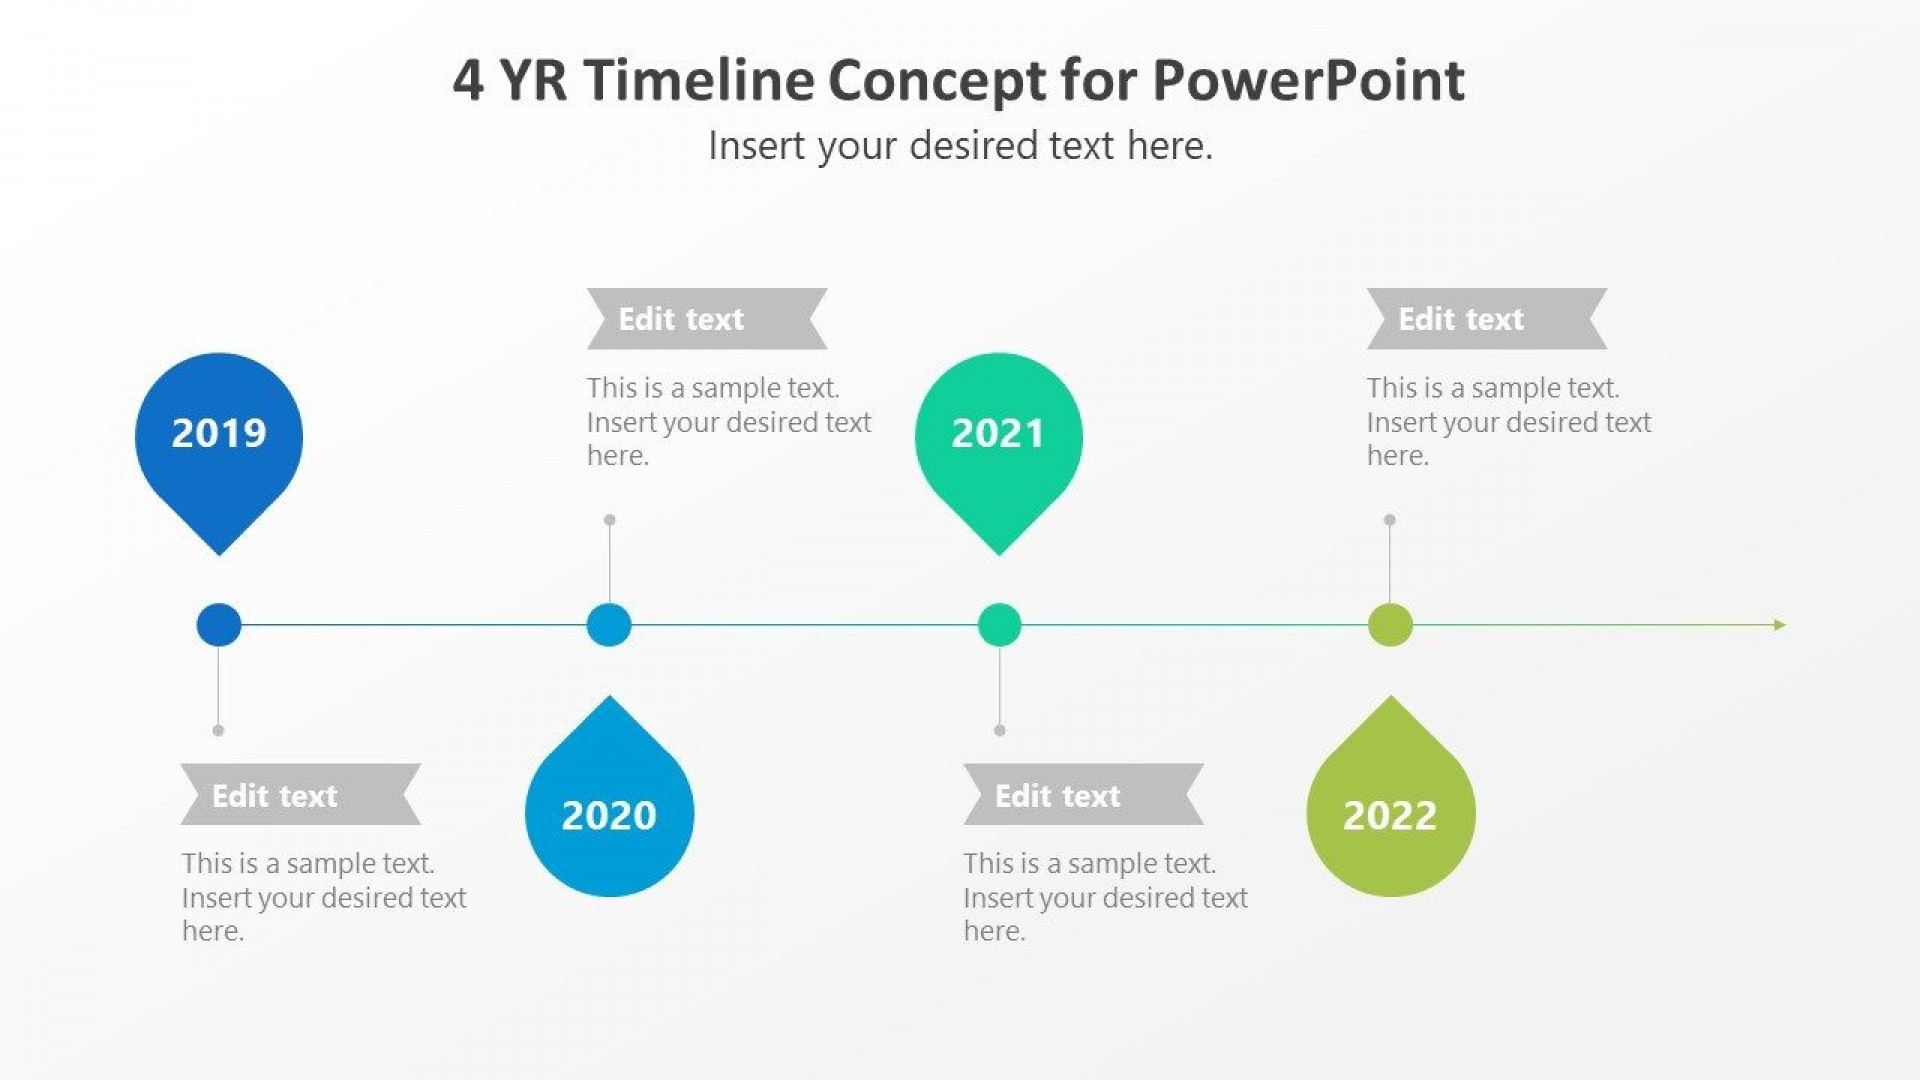 005 Awful Timeline Template For Ppt Free Highest Clarity  Infographic Vertical Download1920